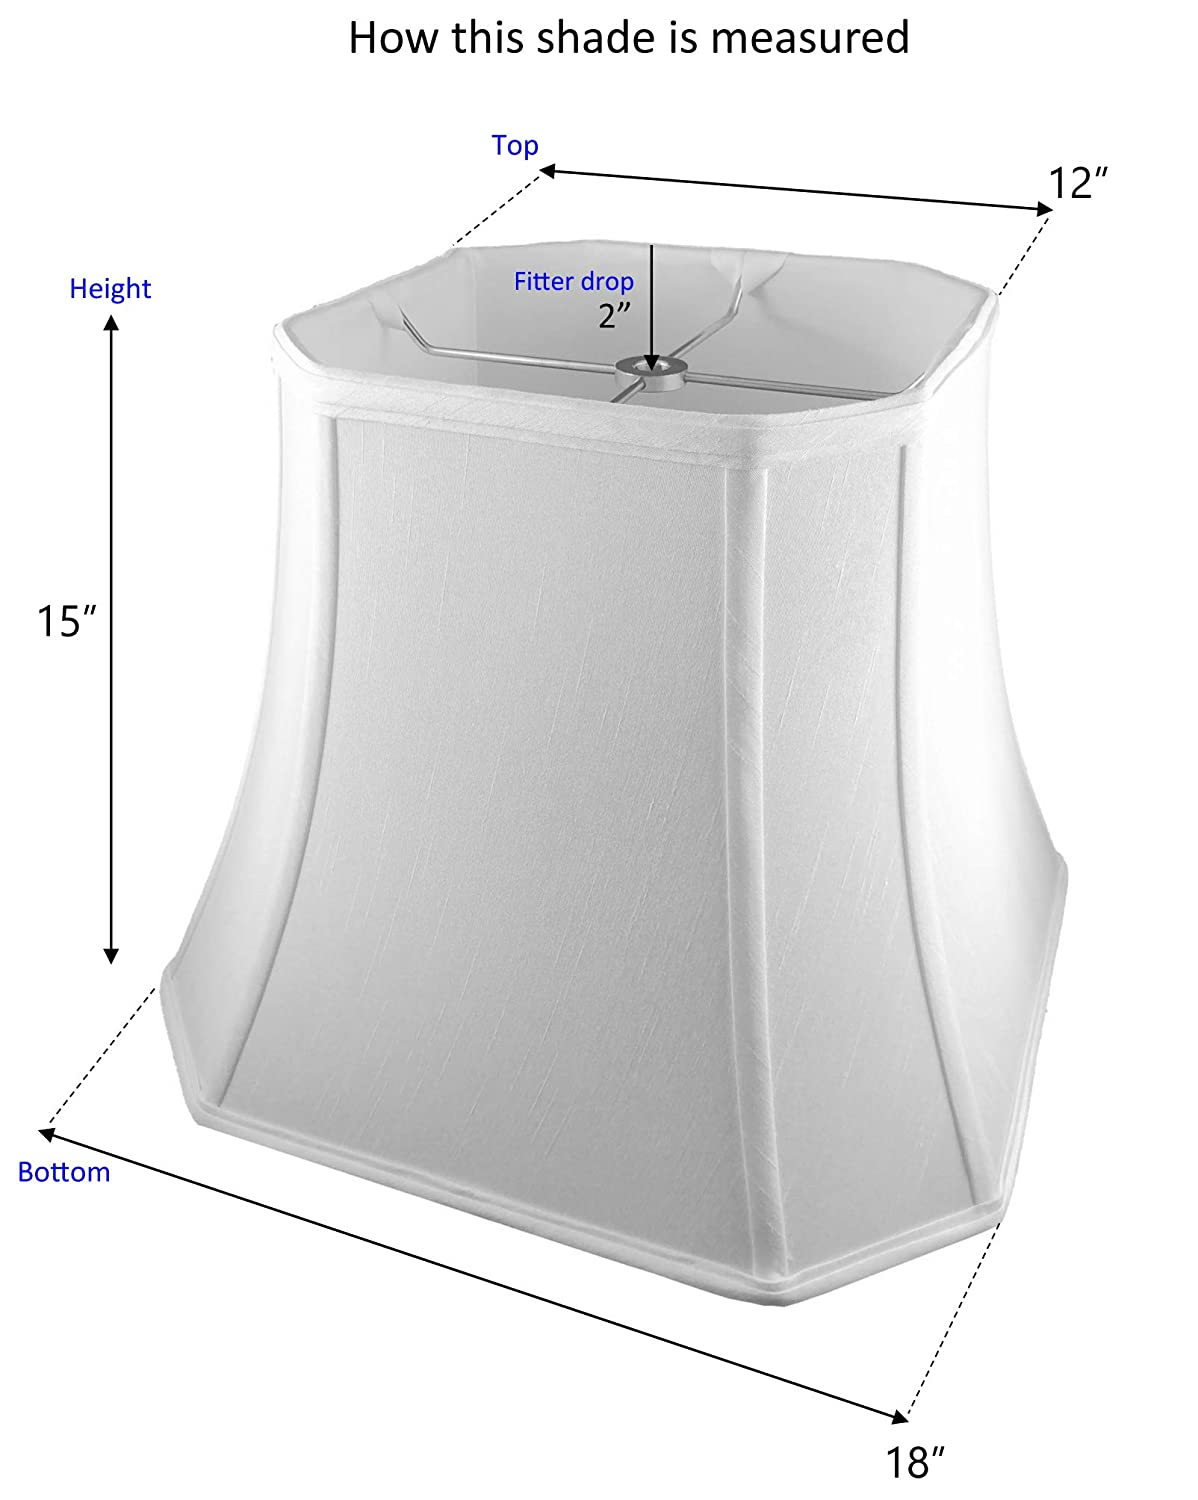 Shantung American Pride 10 x 18 x 14 Square Soft Tailored Lampshade Off-white